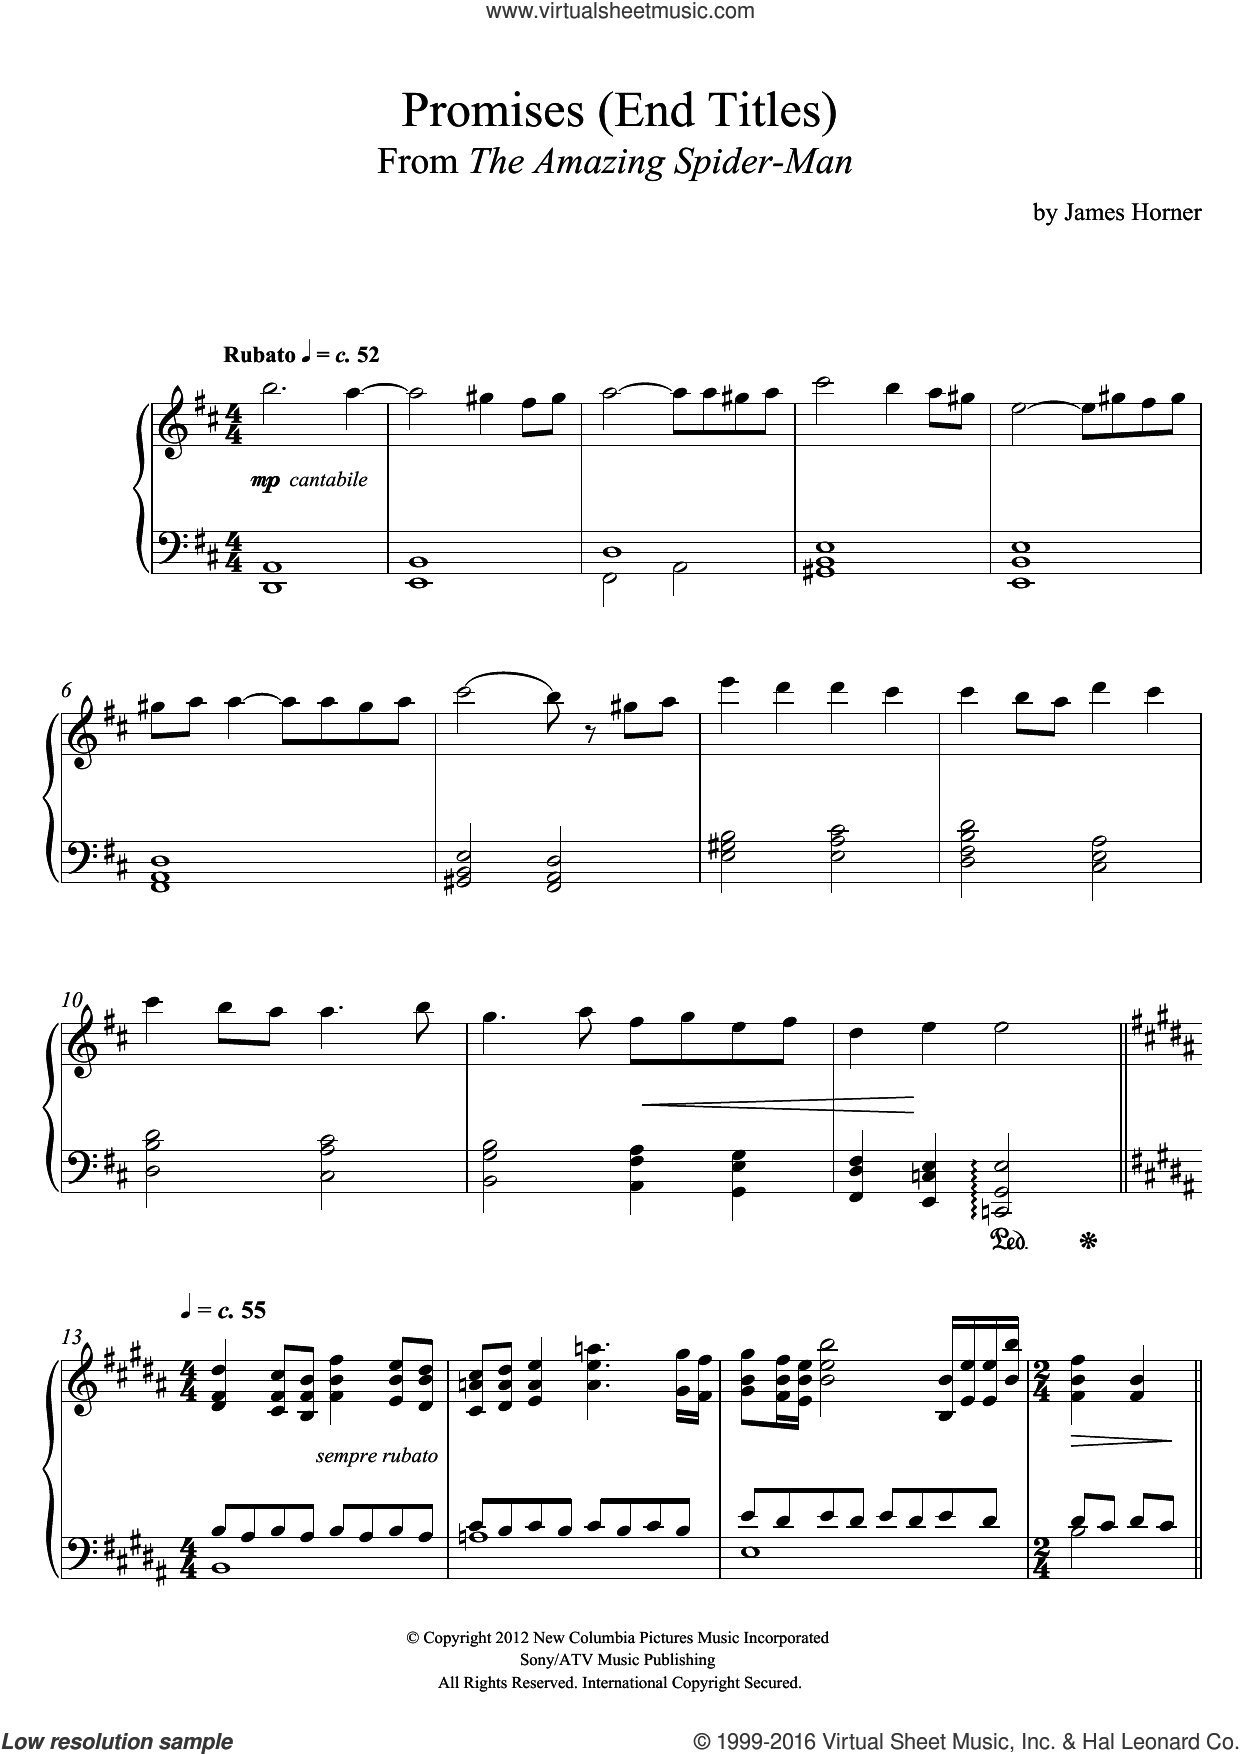 Promises (From The Amazing Spider-Man End Titles) sheet music for piano solo by James Horner, intermediate skill level